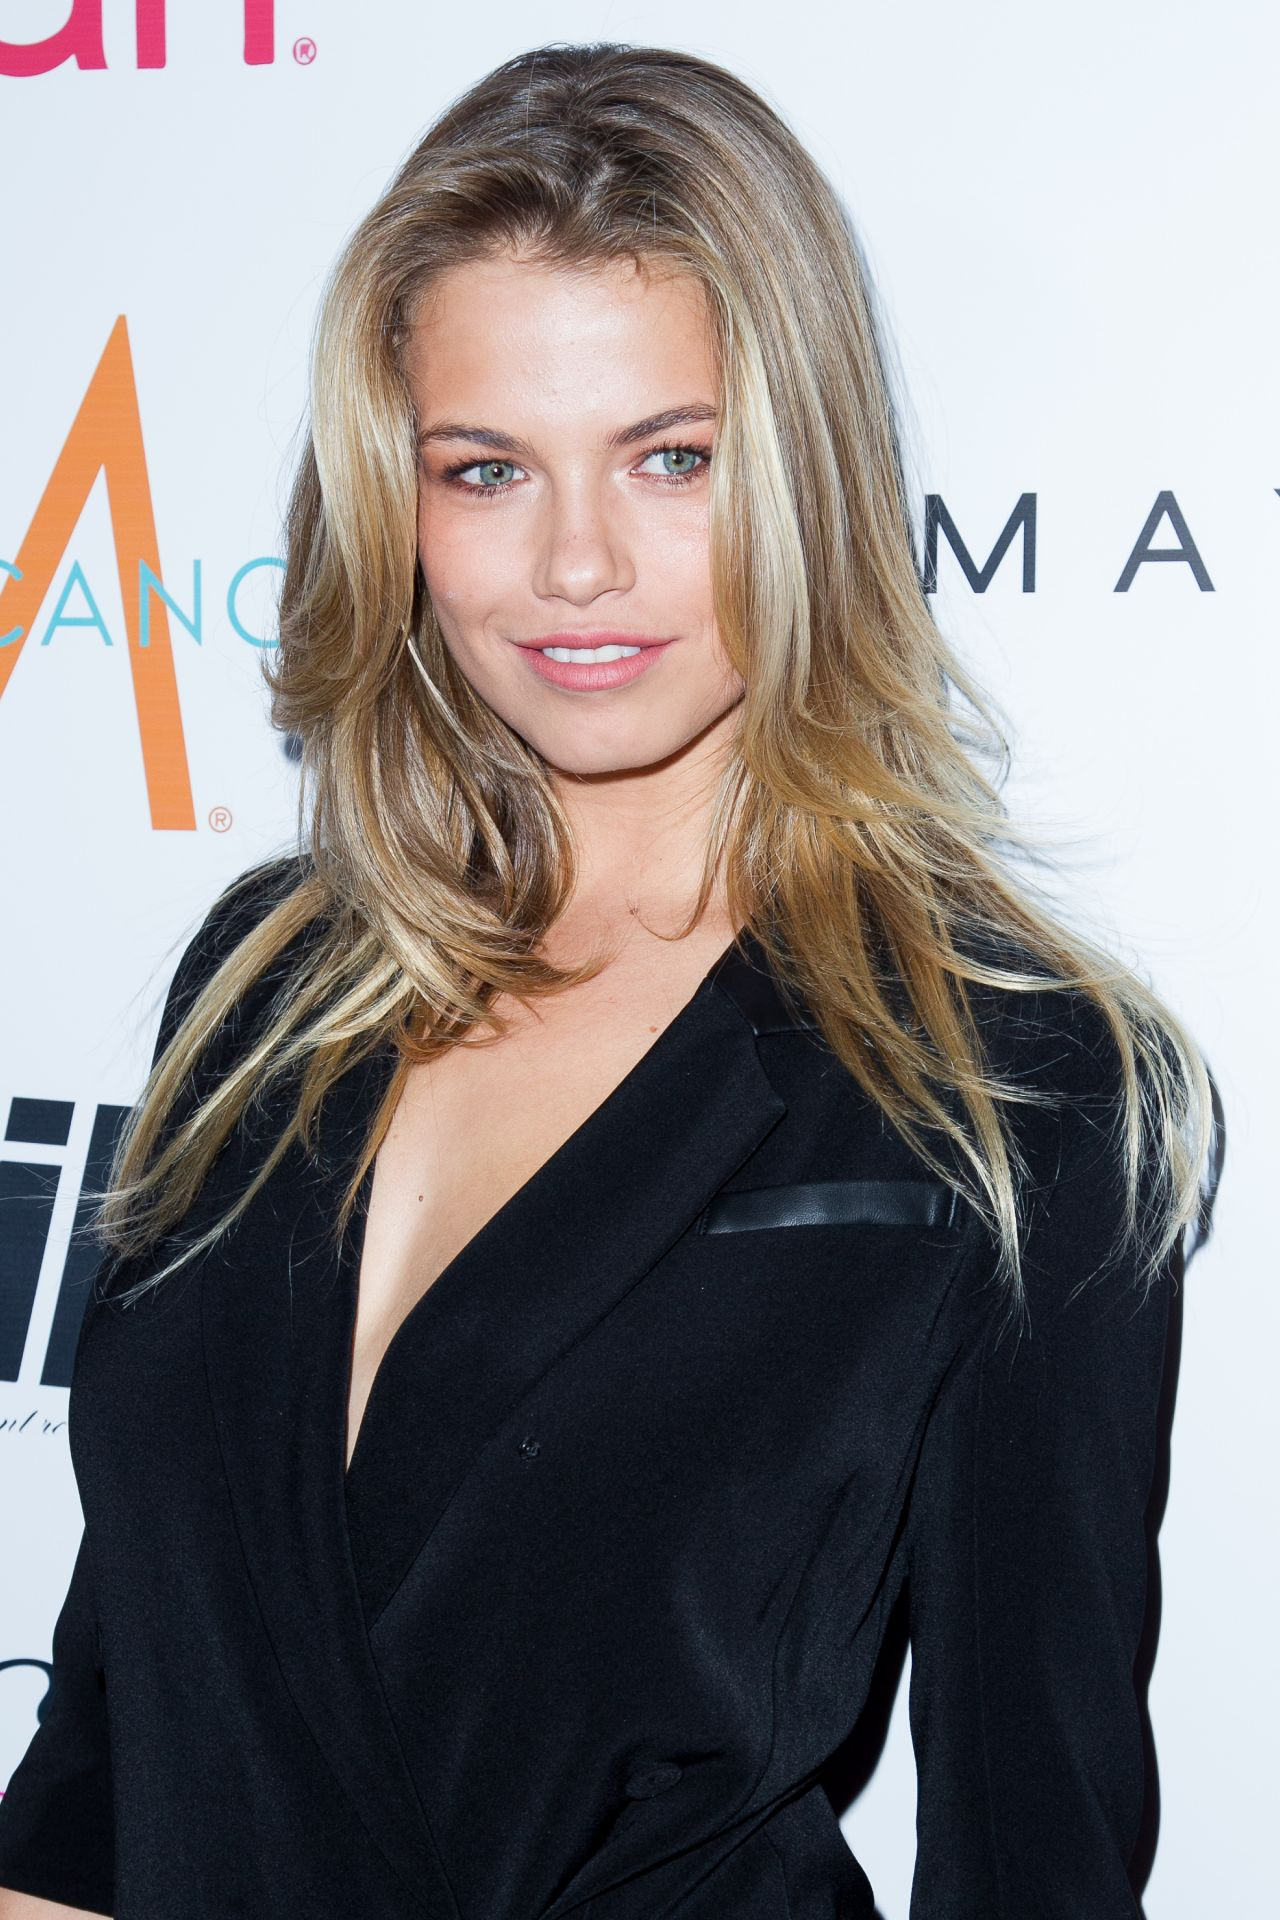 Hailey Clauson Fashion Los Angeles Awards Show In Los